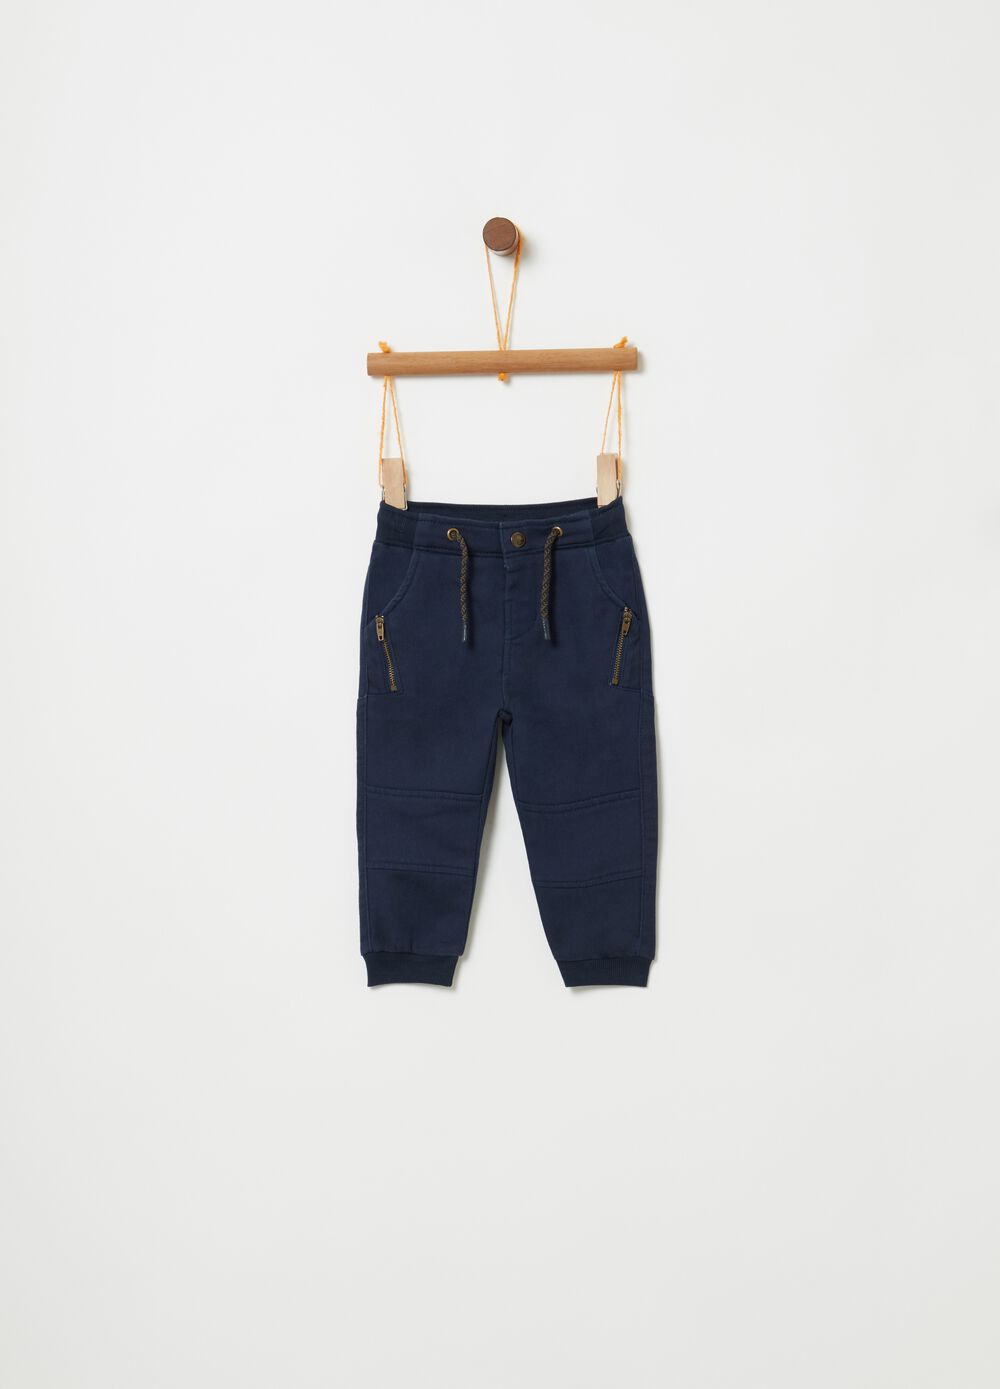 Trousers with drawstring, cuts and zip